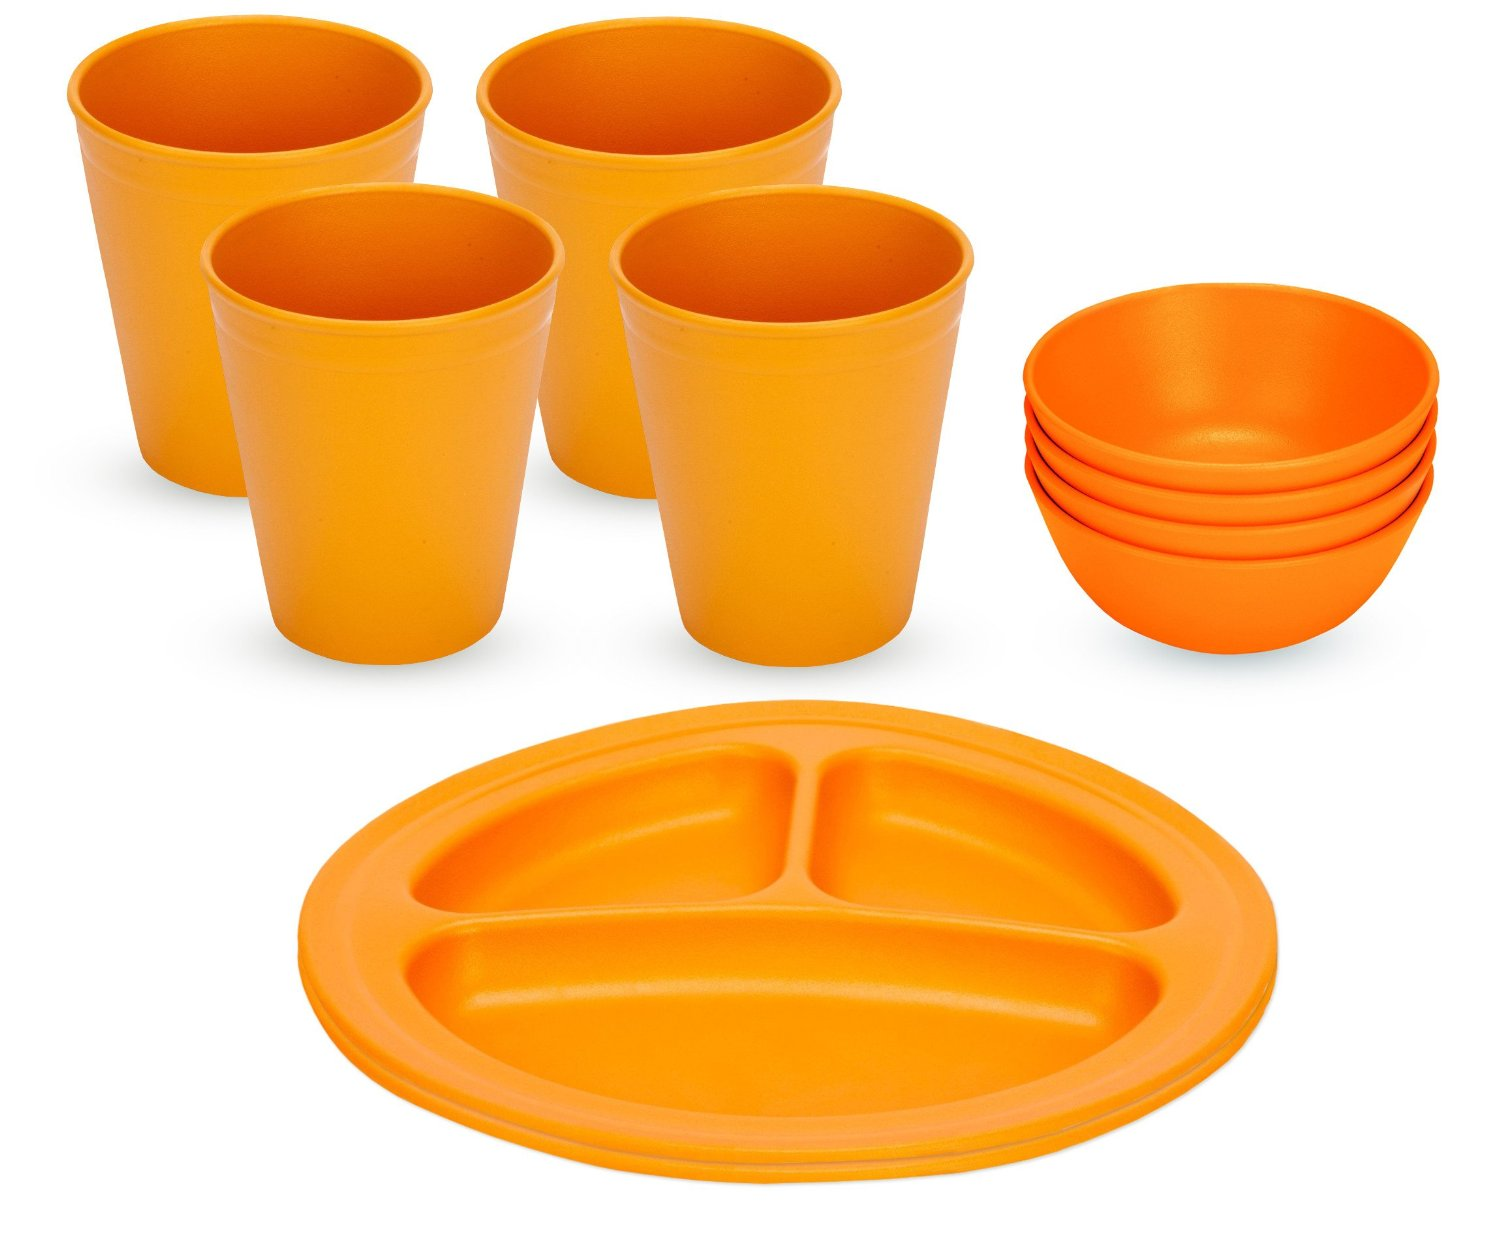 Green Eats Divided Plates with Snack Bowls & Tumblers, Orange by Green Eats